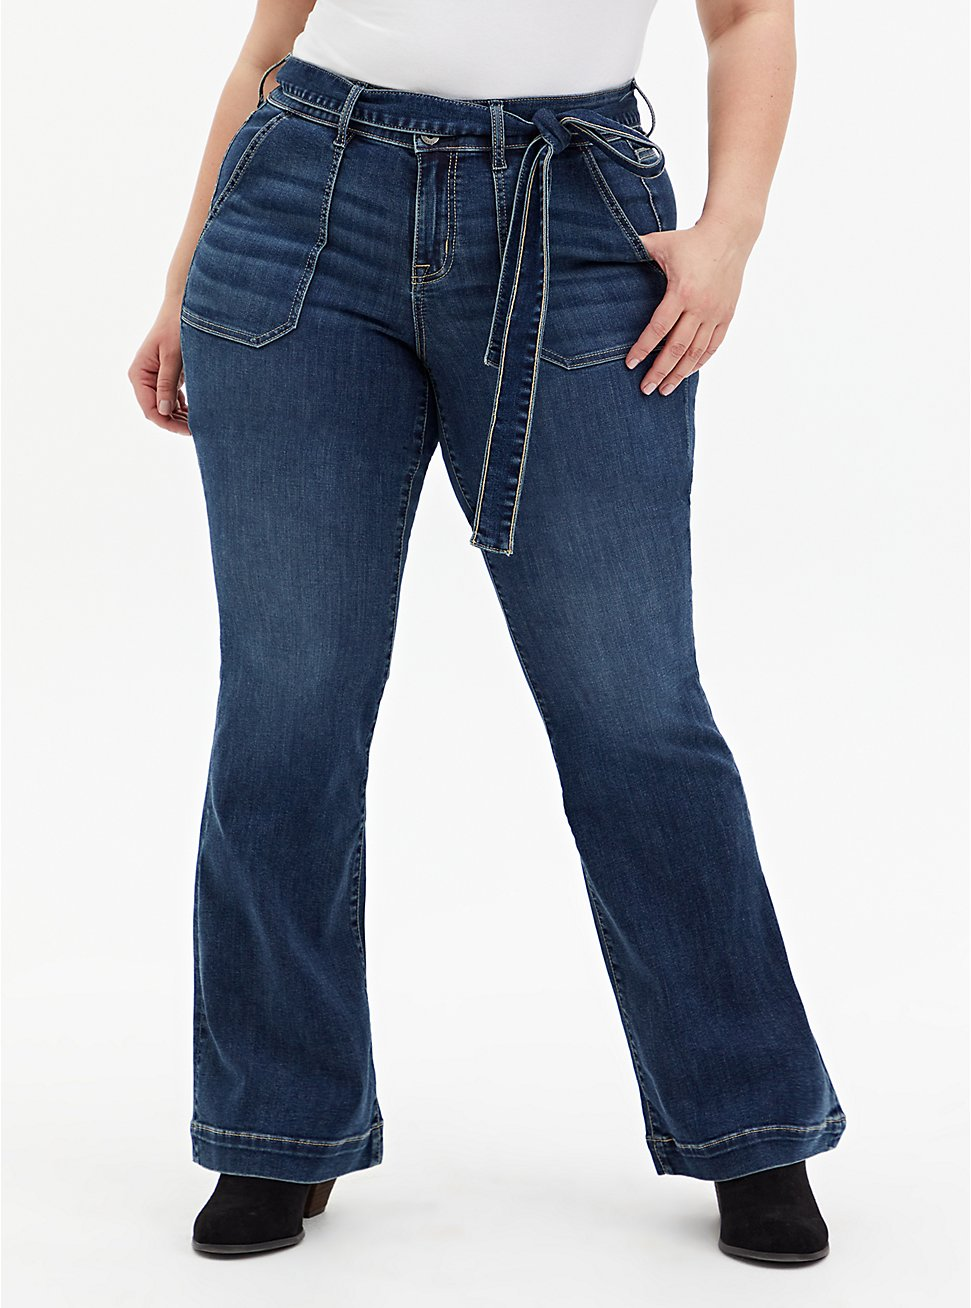 Mid Rise Flare Jean - Super Soft Eco Medium Wash With Tie Belt, BLUE GROTTO, hi-res